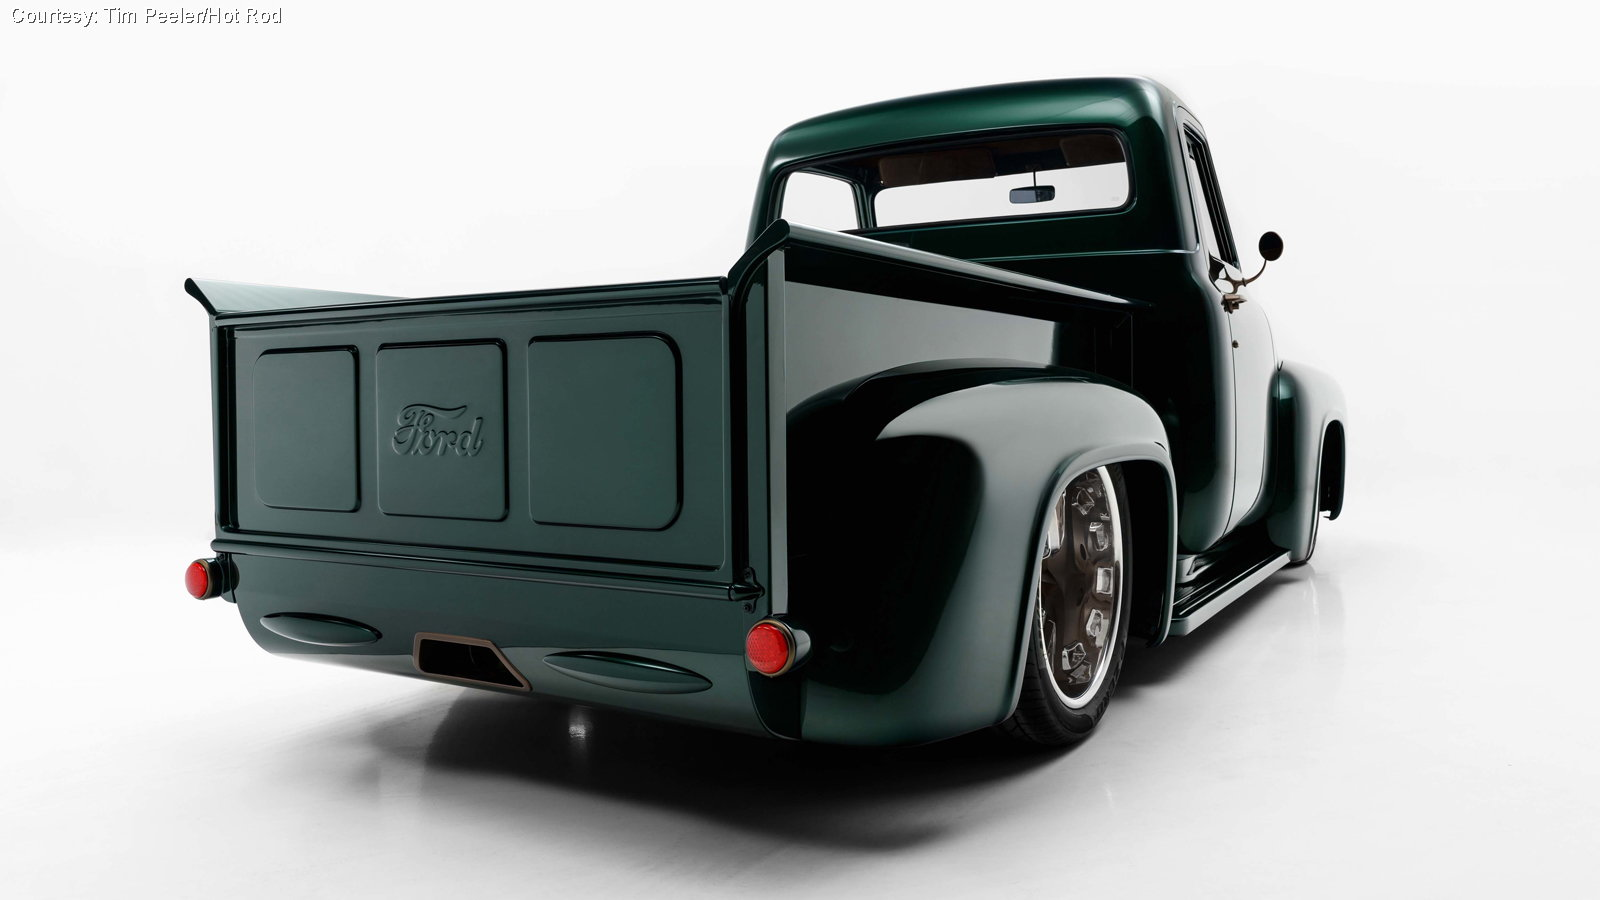 This F-100 is the Product of Growing Up Dedicated to Ford